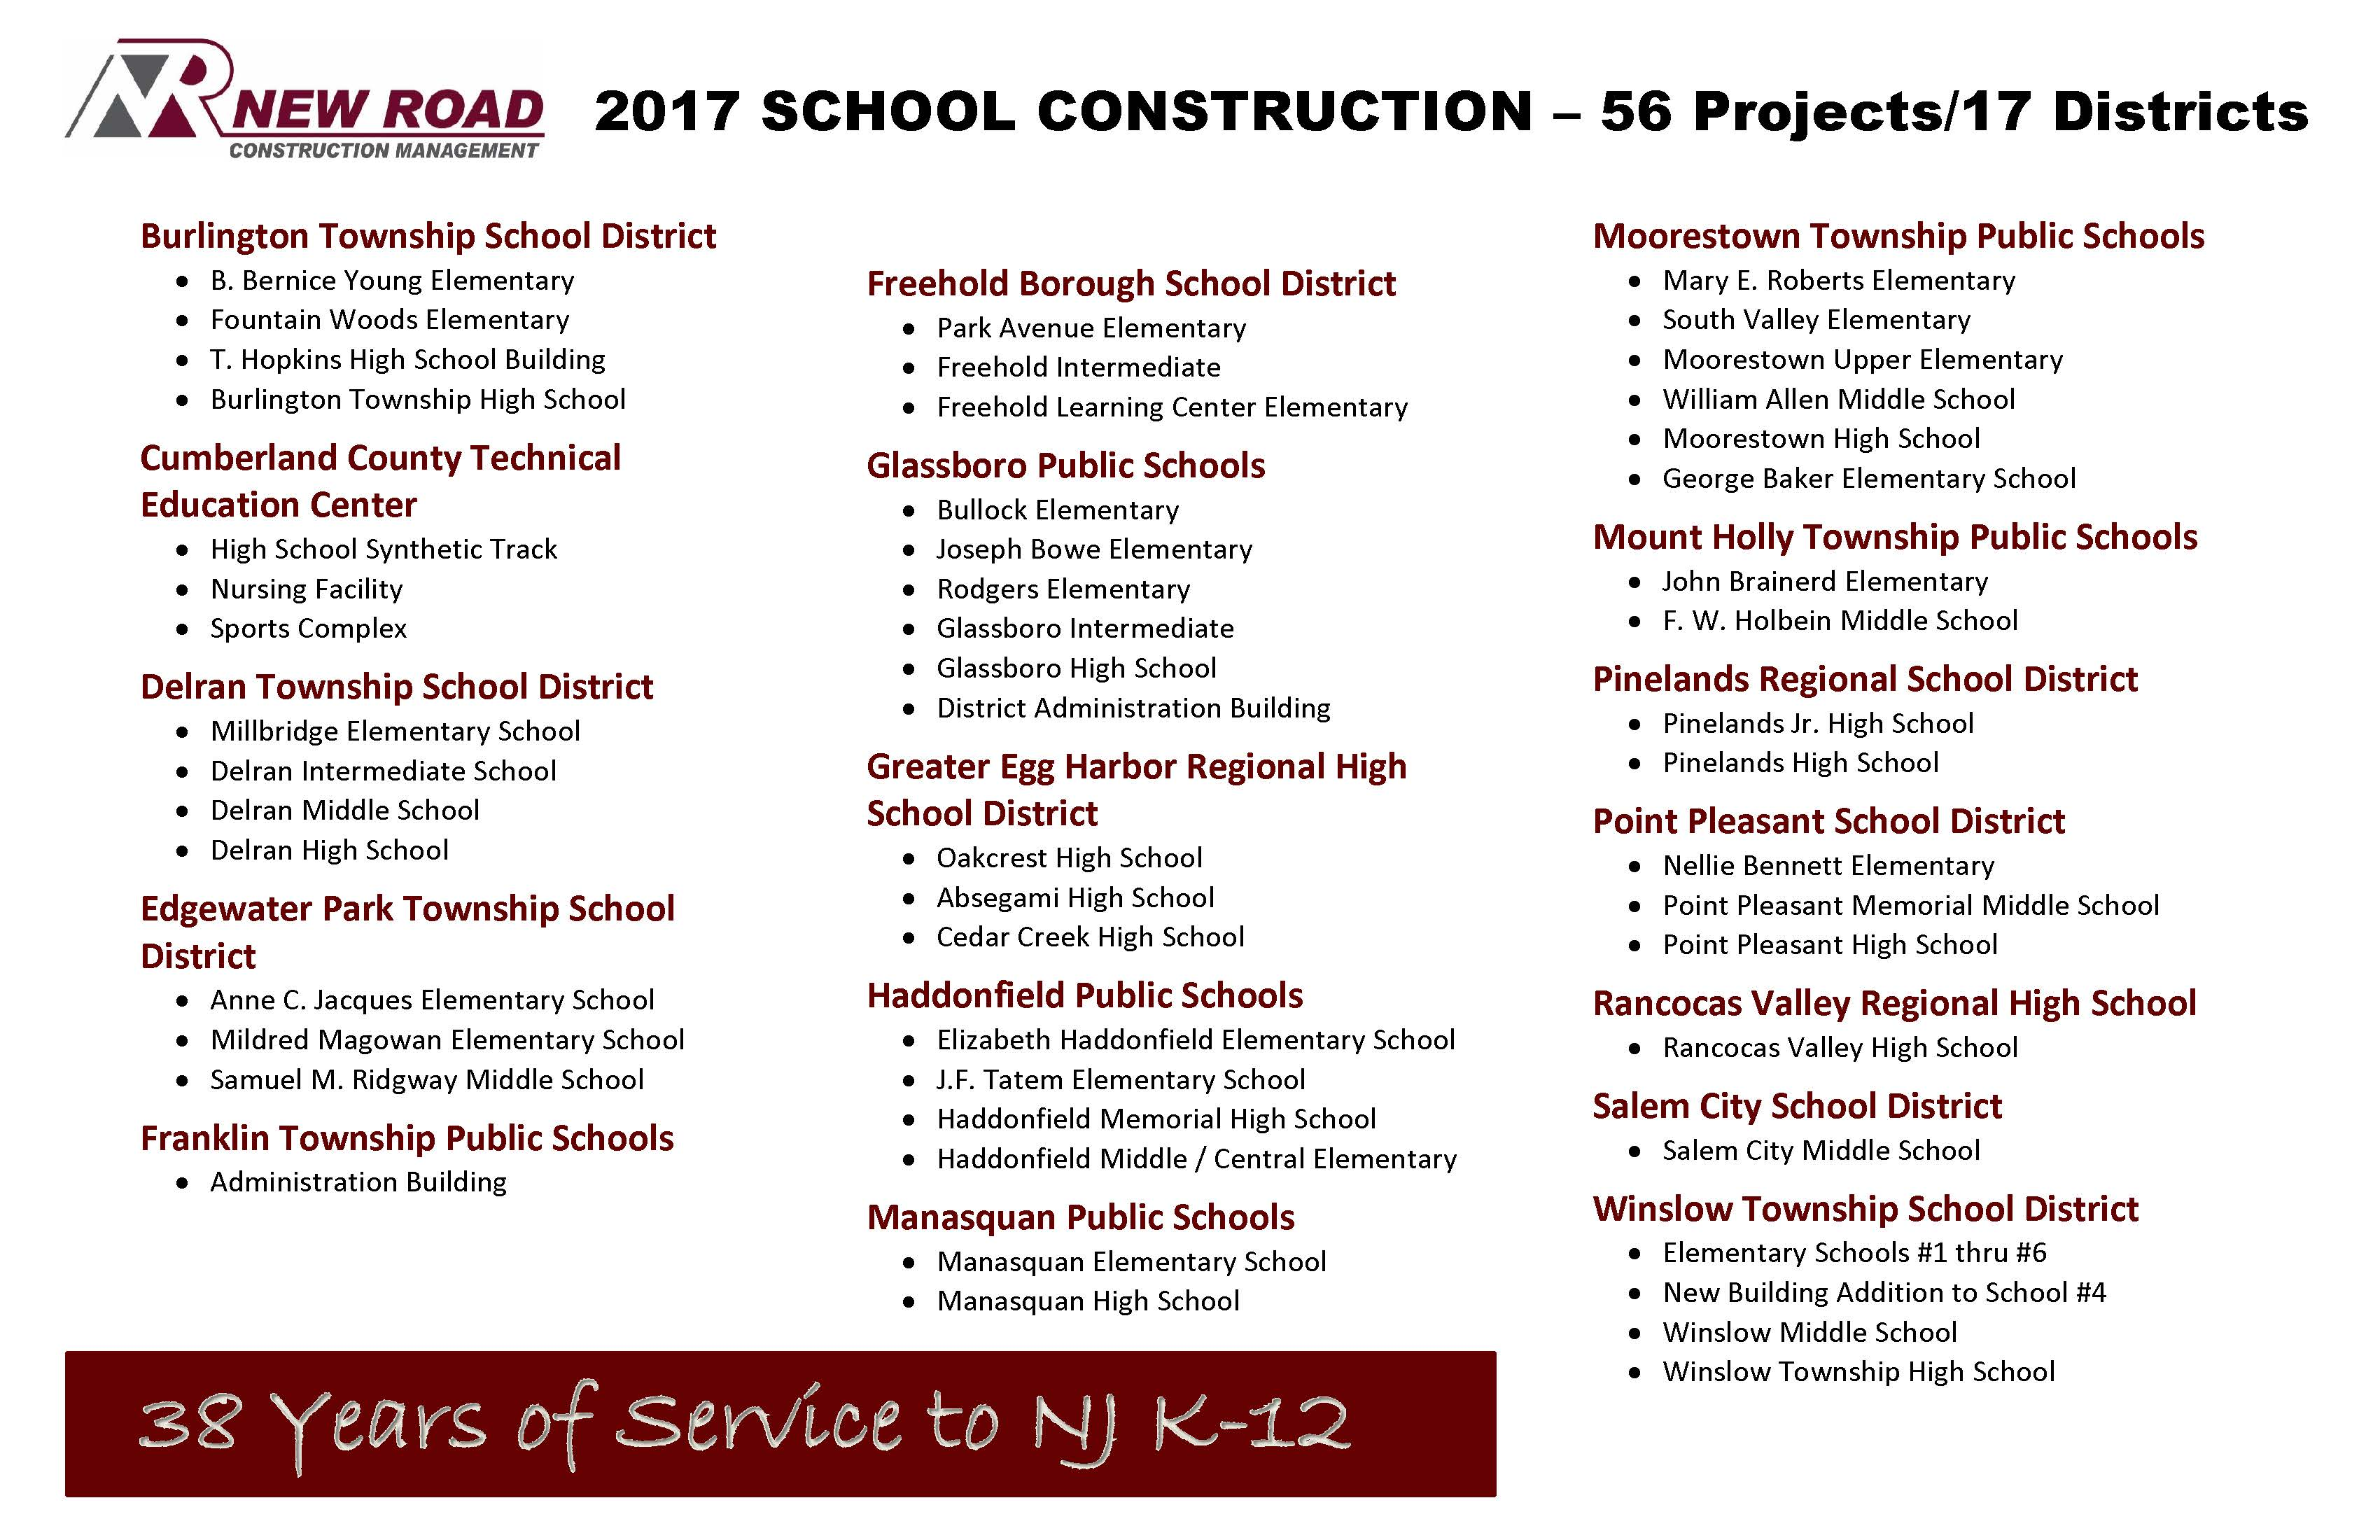 56 NJ Schools projects in 17 School Districts | NEW ROAD Construction